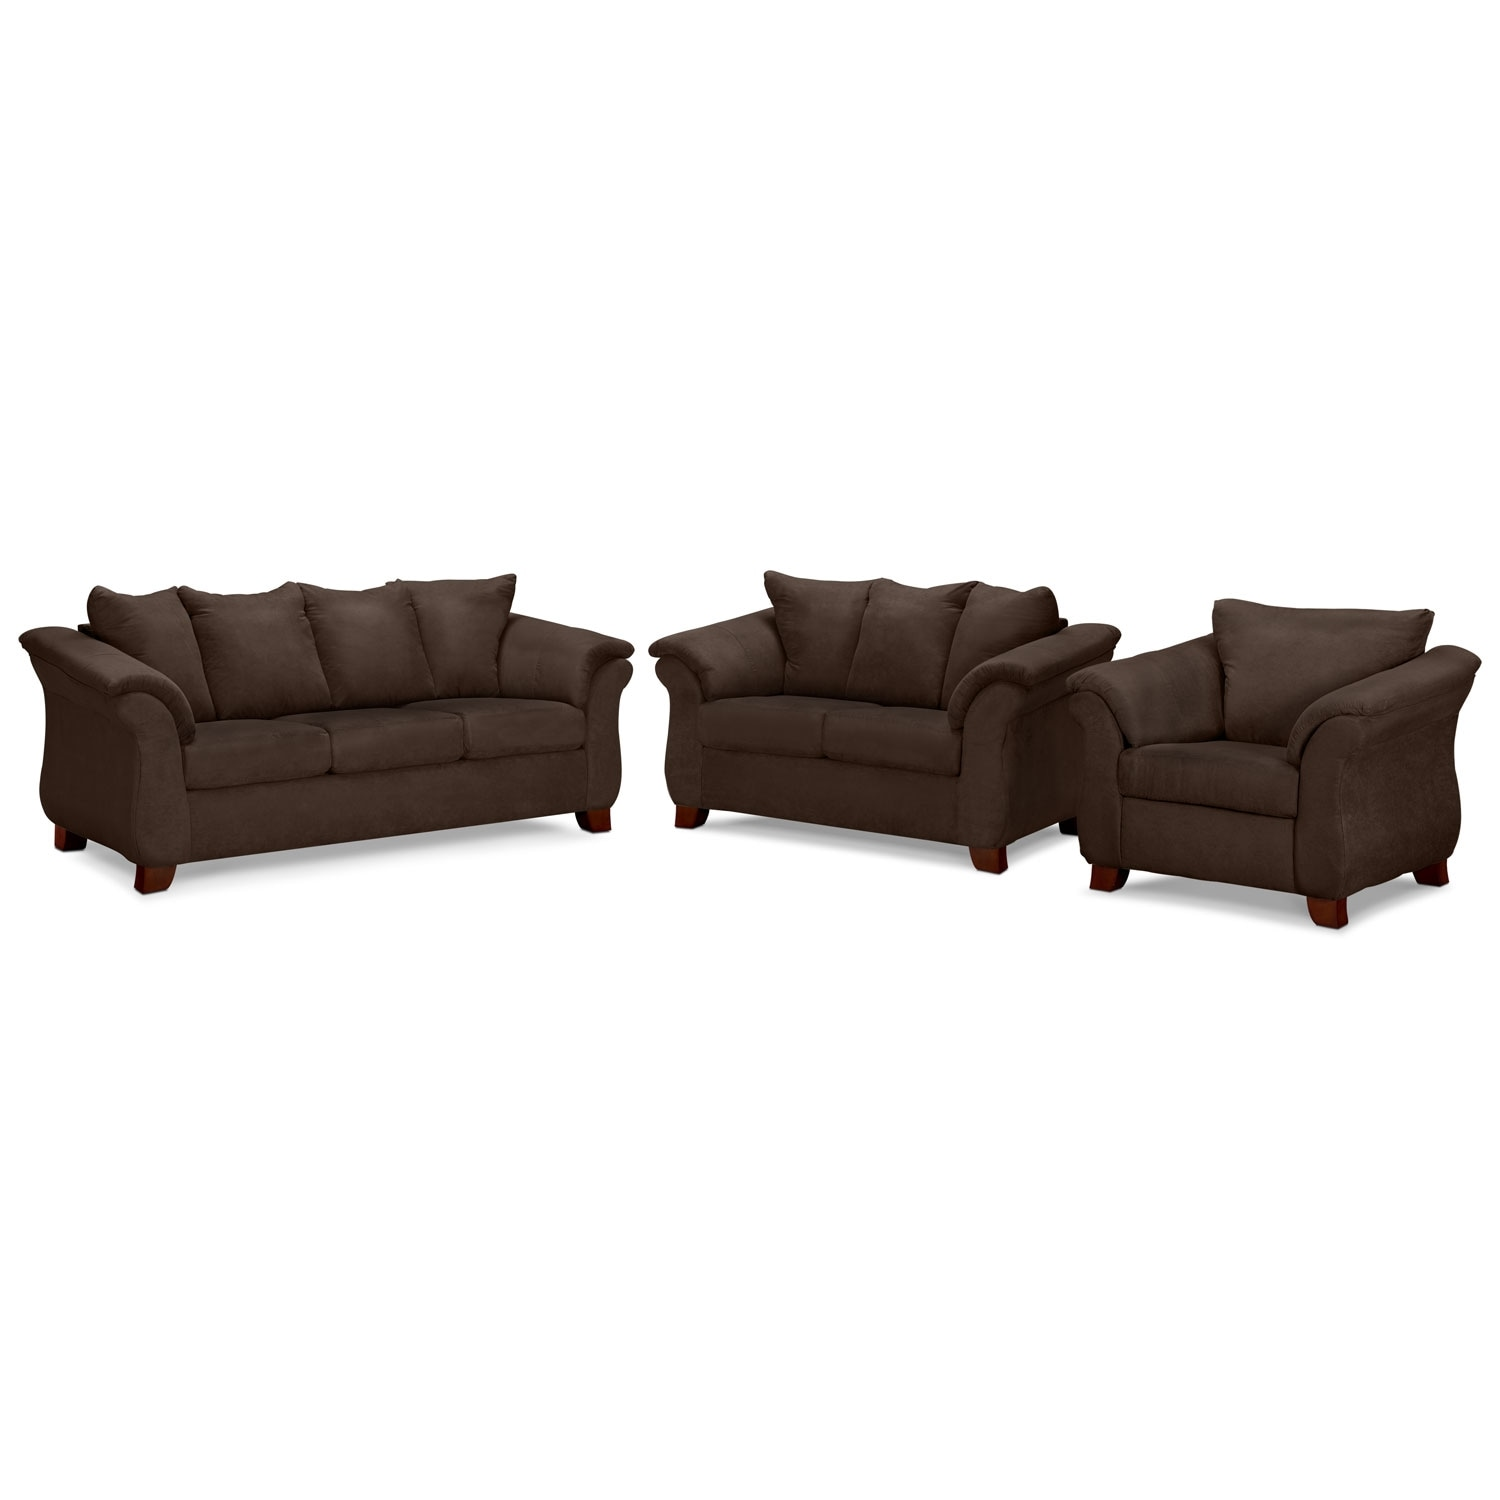 Adrian Sofa, Loveseat and Chair Set - Chocolate